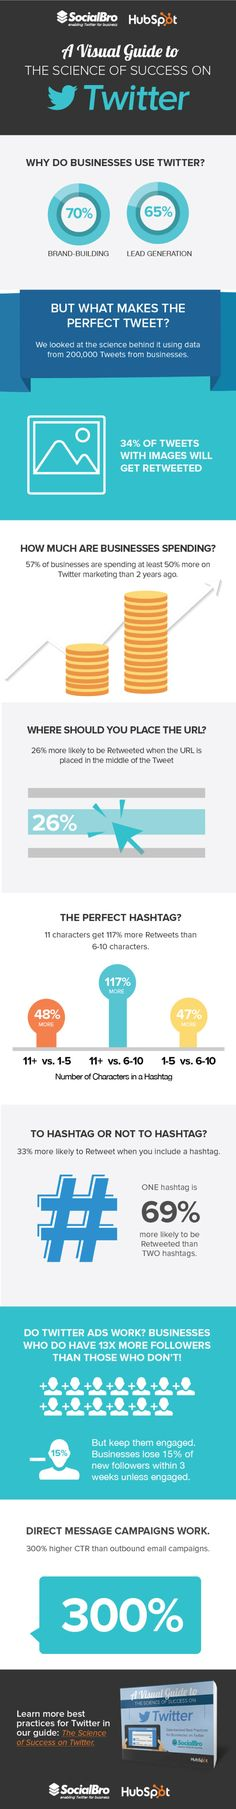 A visual guide to the science of success on Twitter: http://blog.hubspot.com/marketing/science-of-twitter-success